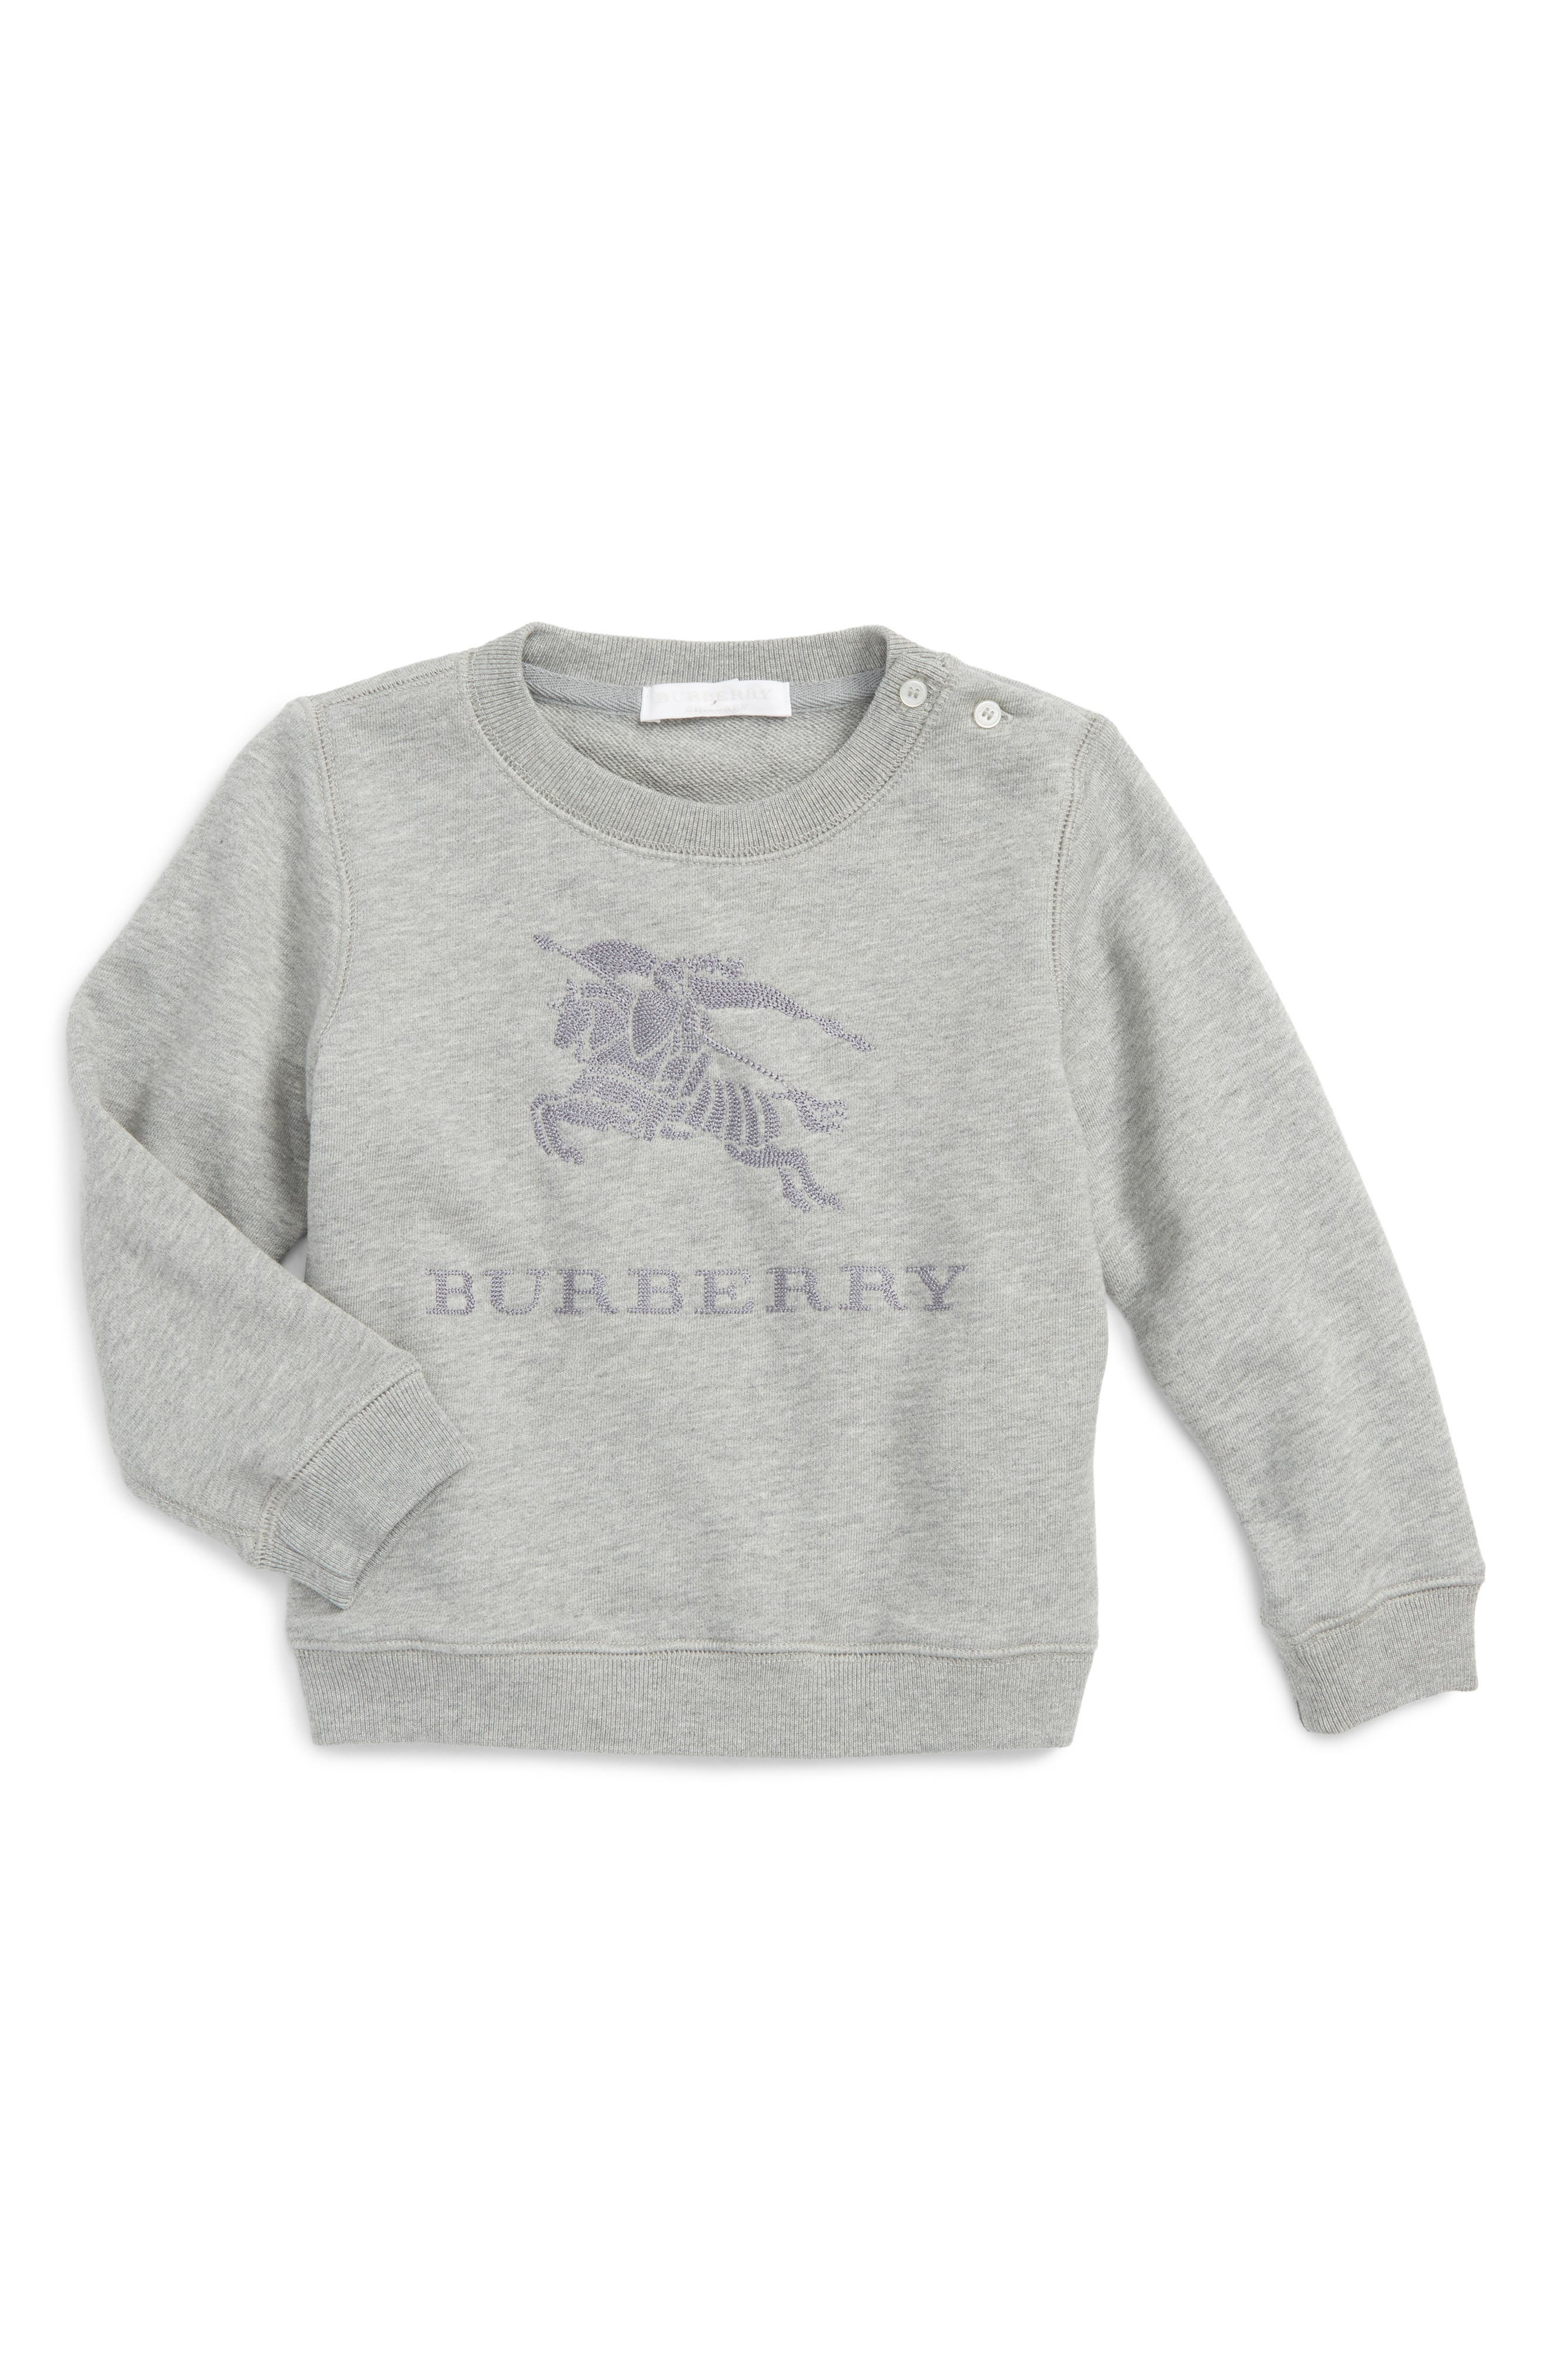 Tom Embroidered Pullover,                             Main thumbnail 1, color,                             035